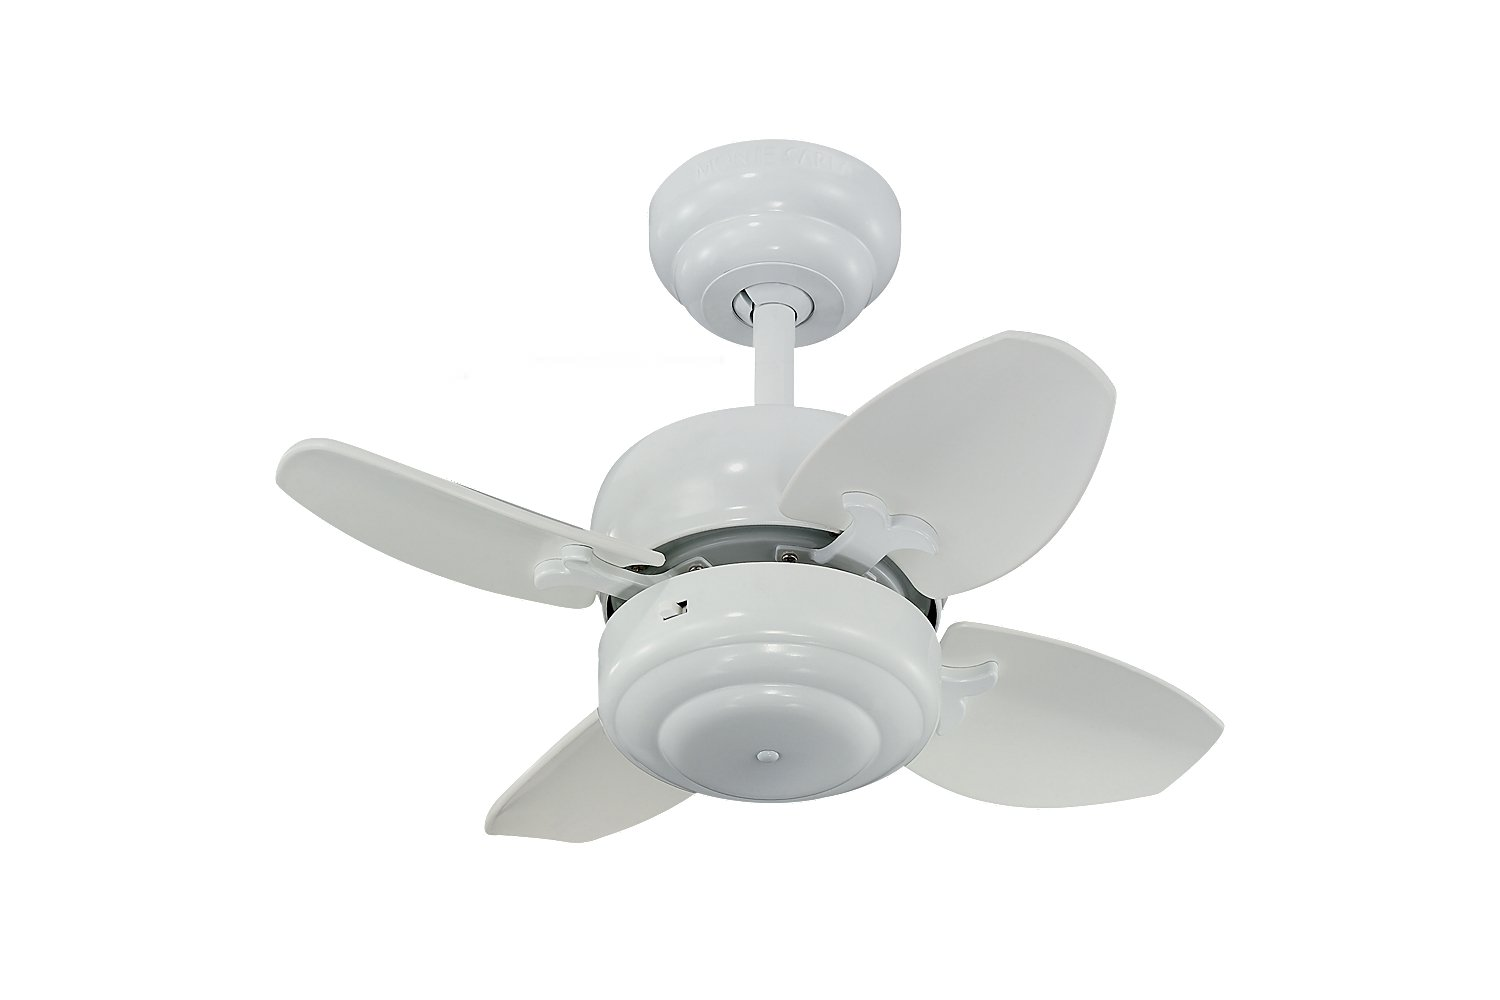 new a ceiling rated how to amp top in inspirational home fresh fan of helpful superior customer light universal kits best lighting fans install